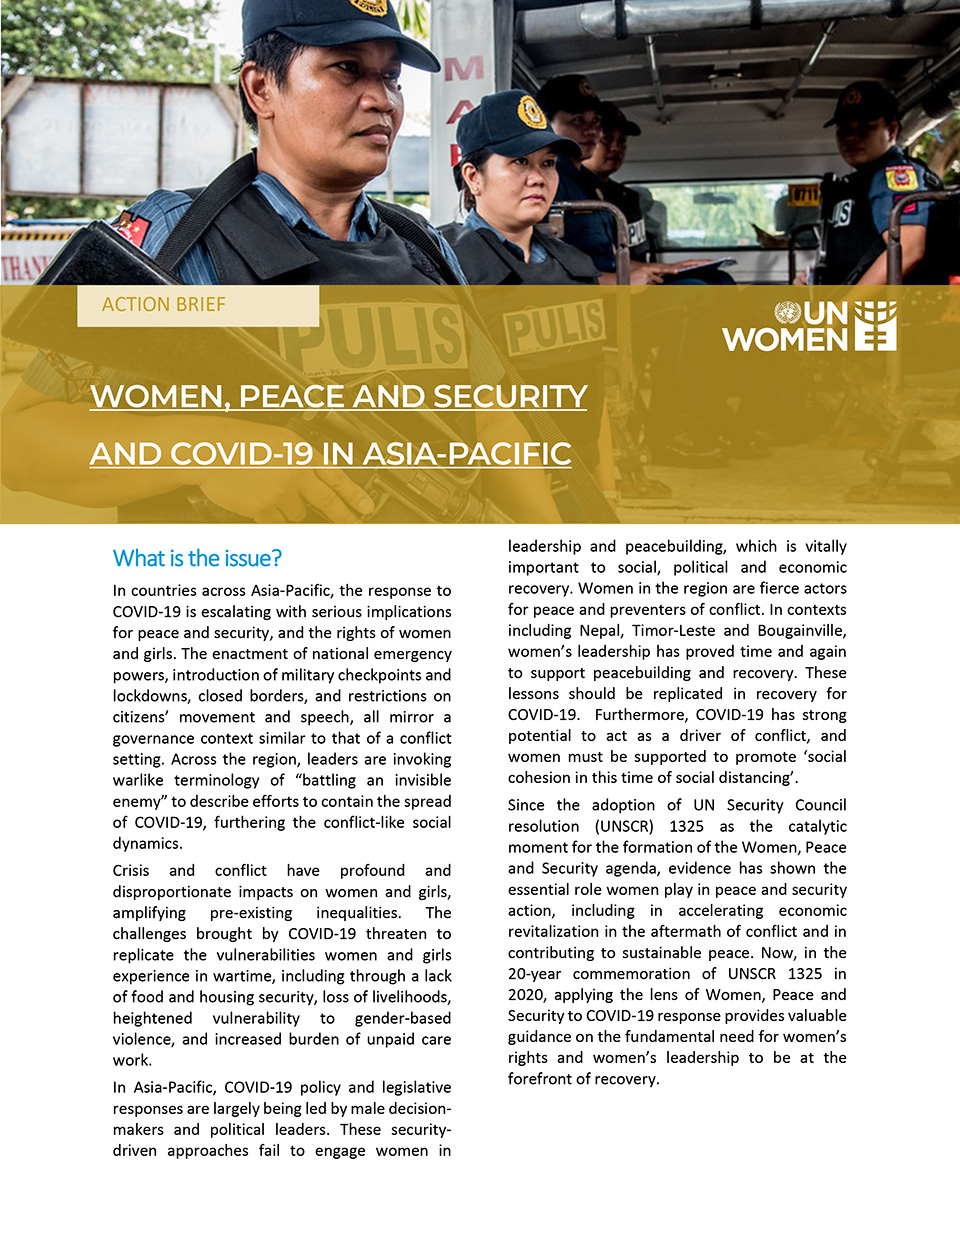 WOMEN, PEACE AND SECURITY AND COVID-19 IN ASIA-PACIFIC